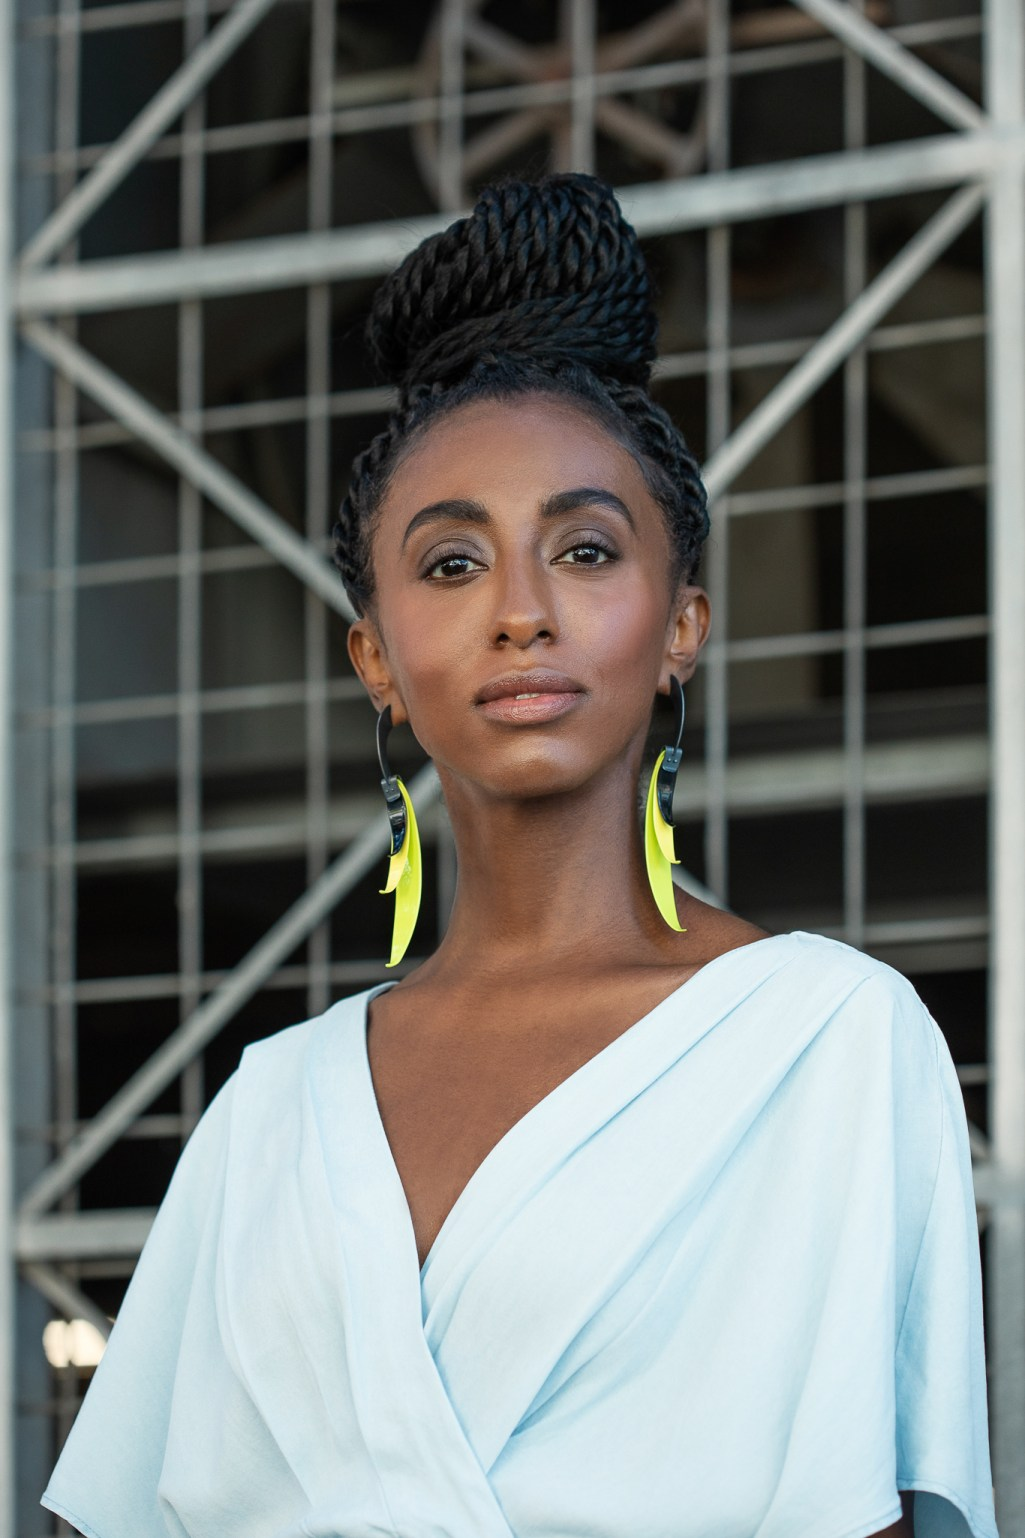 Powerful and bold photography of woman wearing yellow earrings.